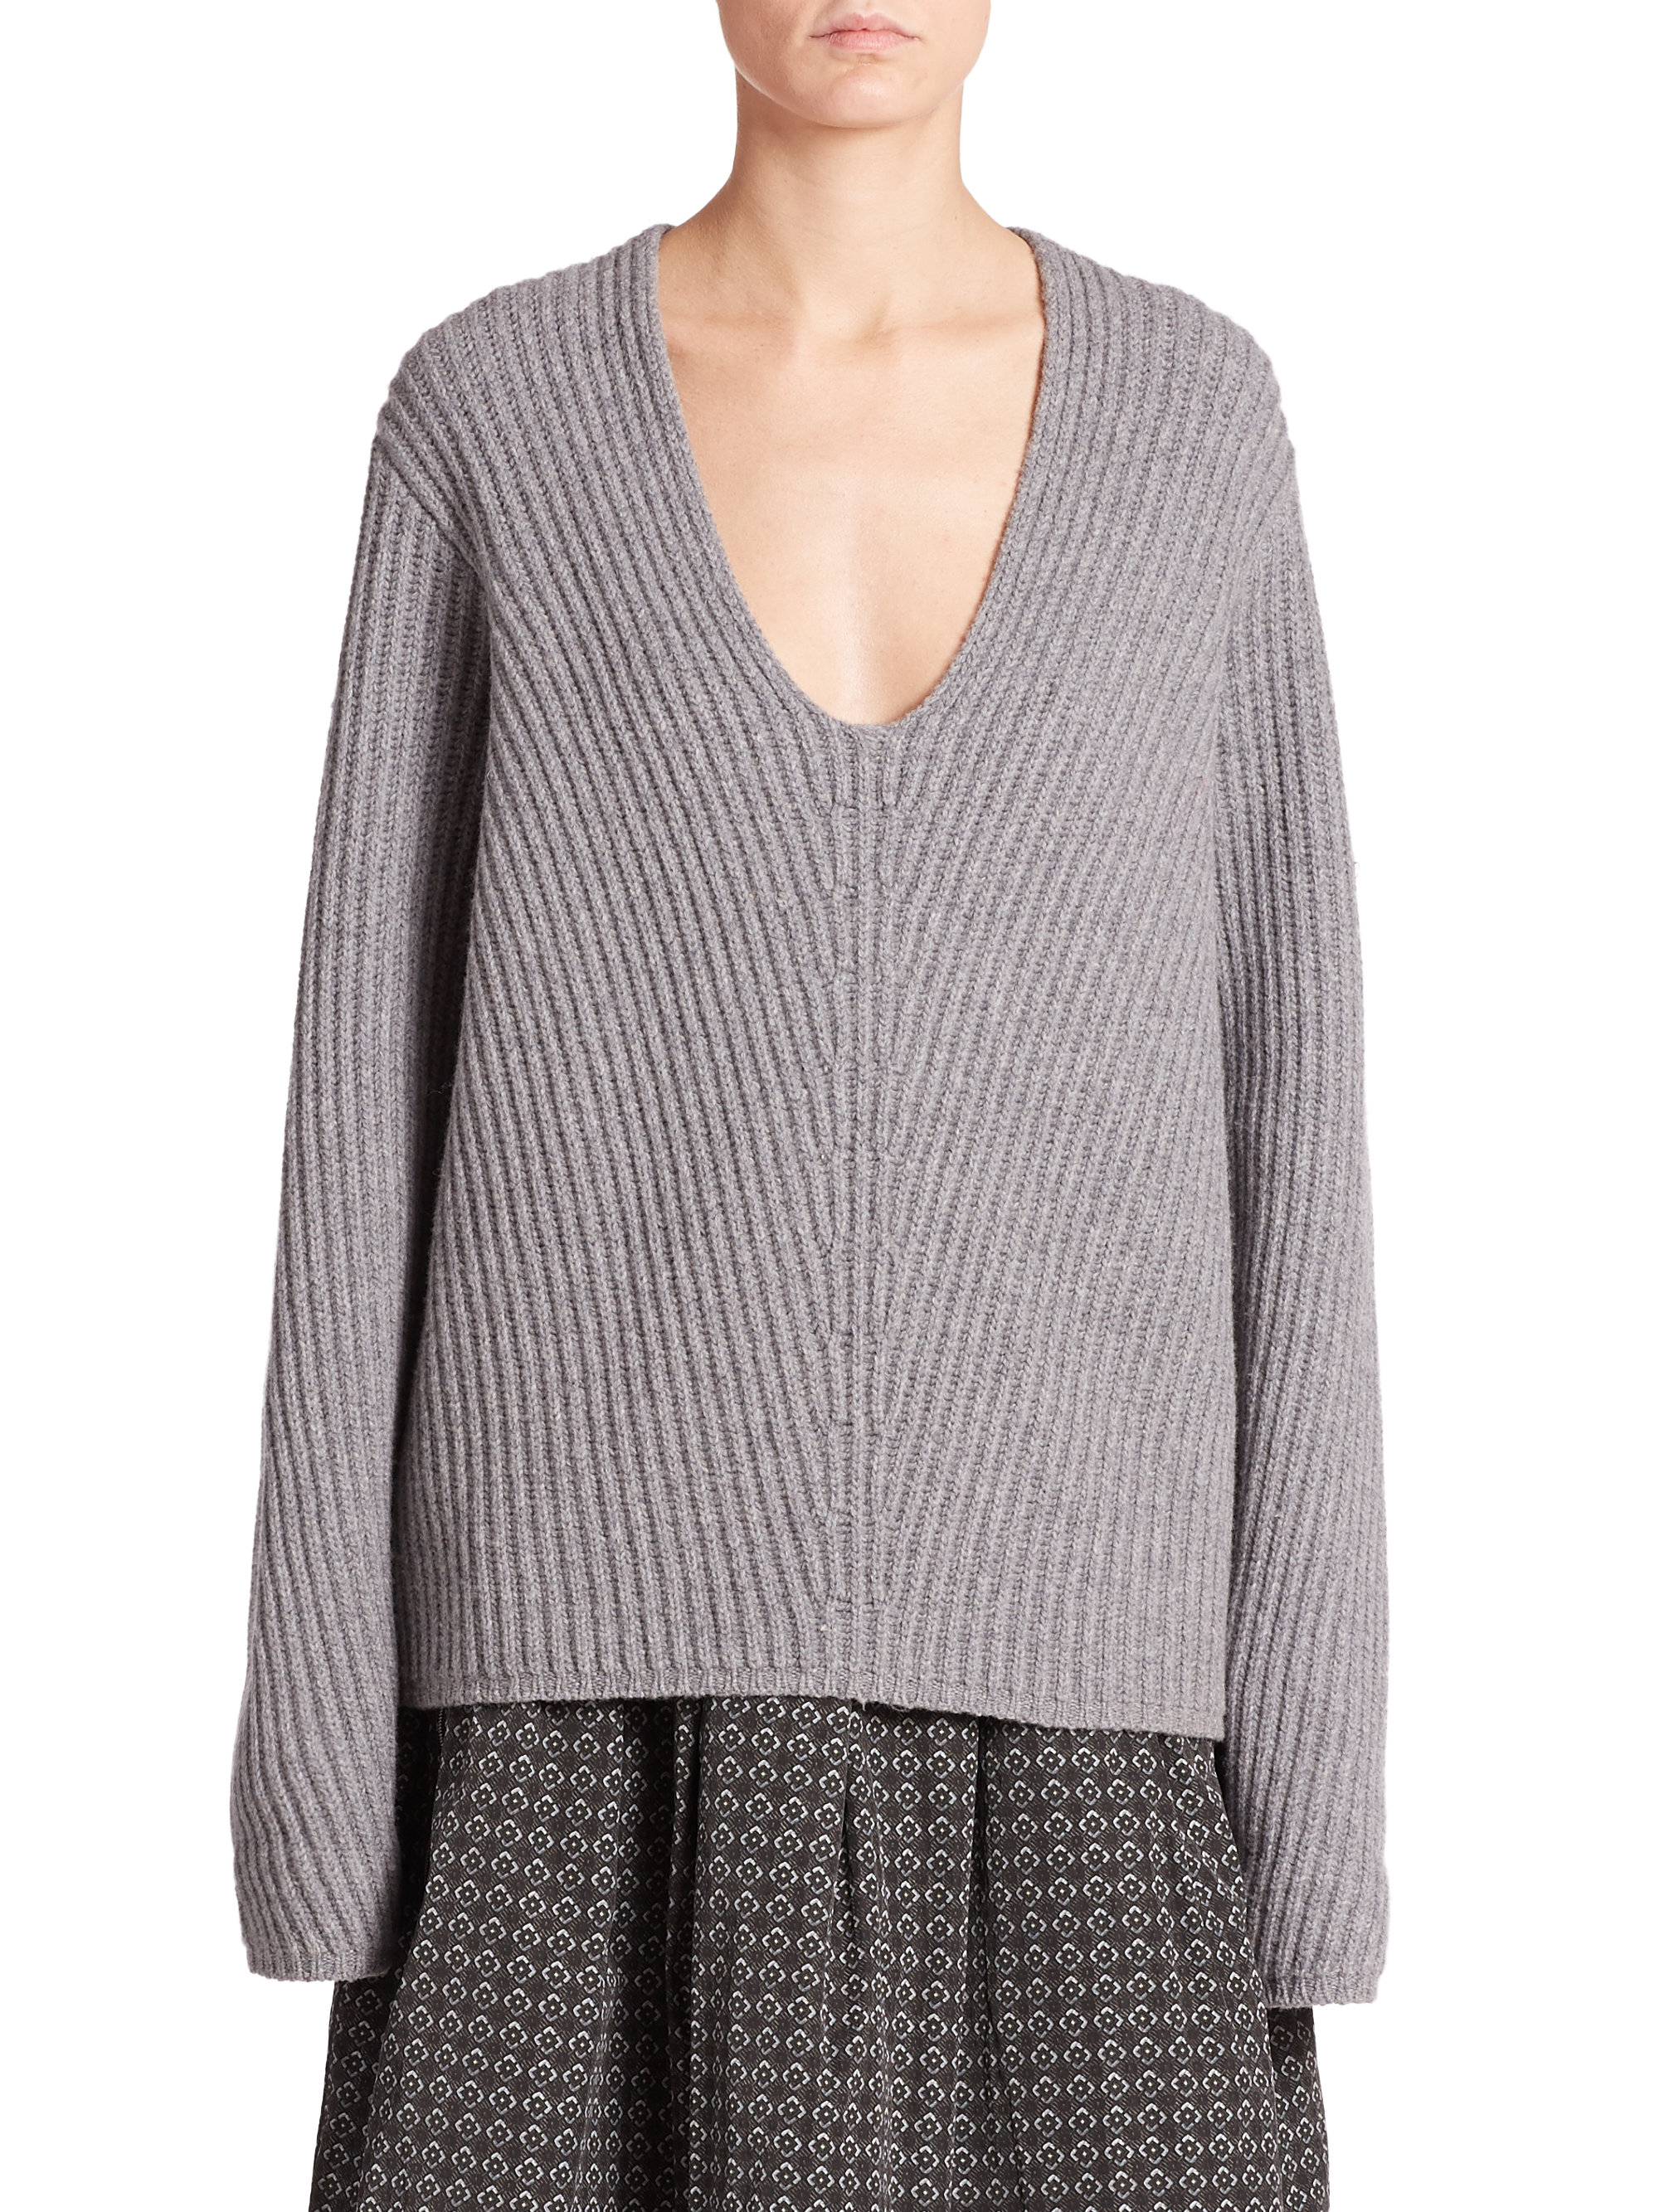 Acne studios Deborah Ribbed Wool Sweater in Brown | Lyst